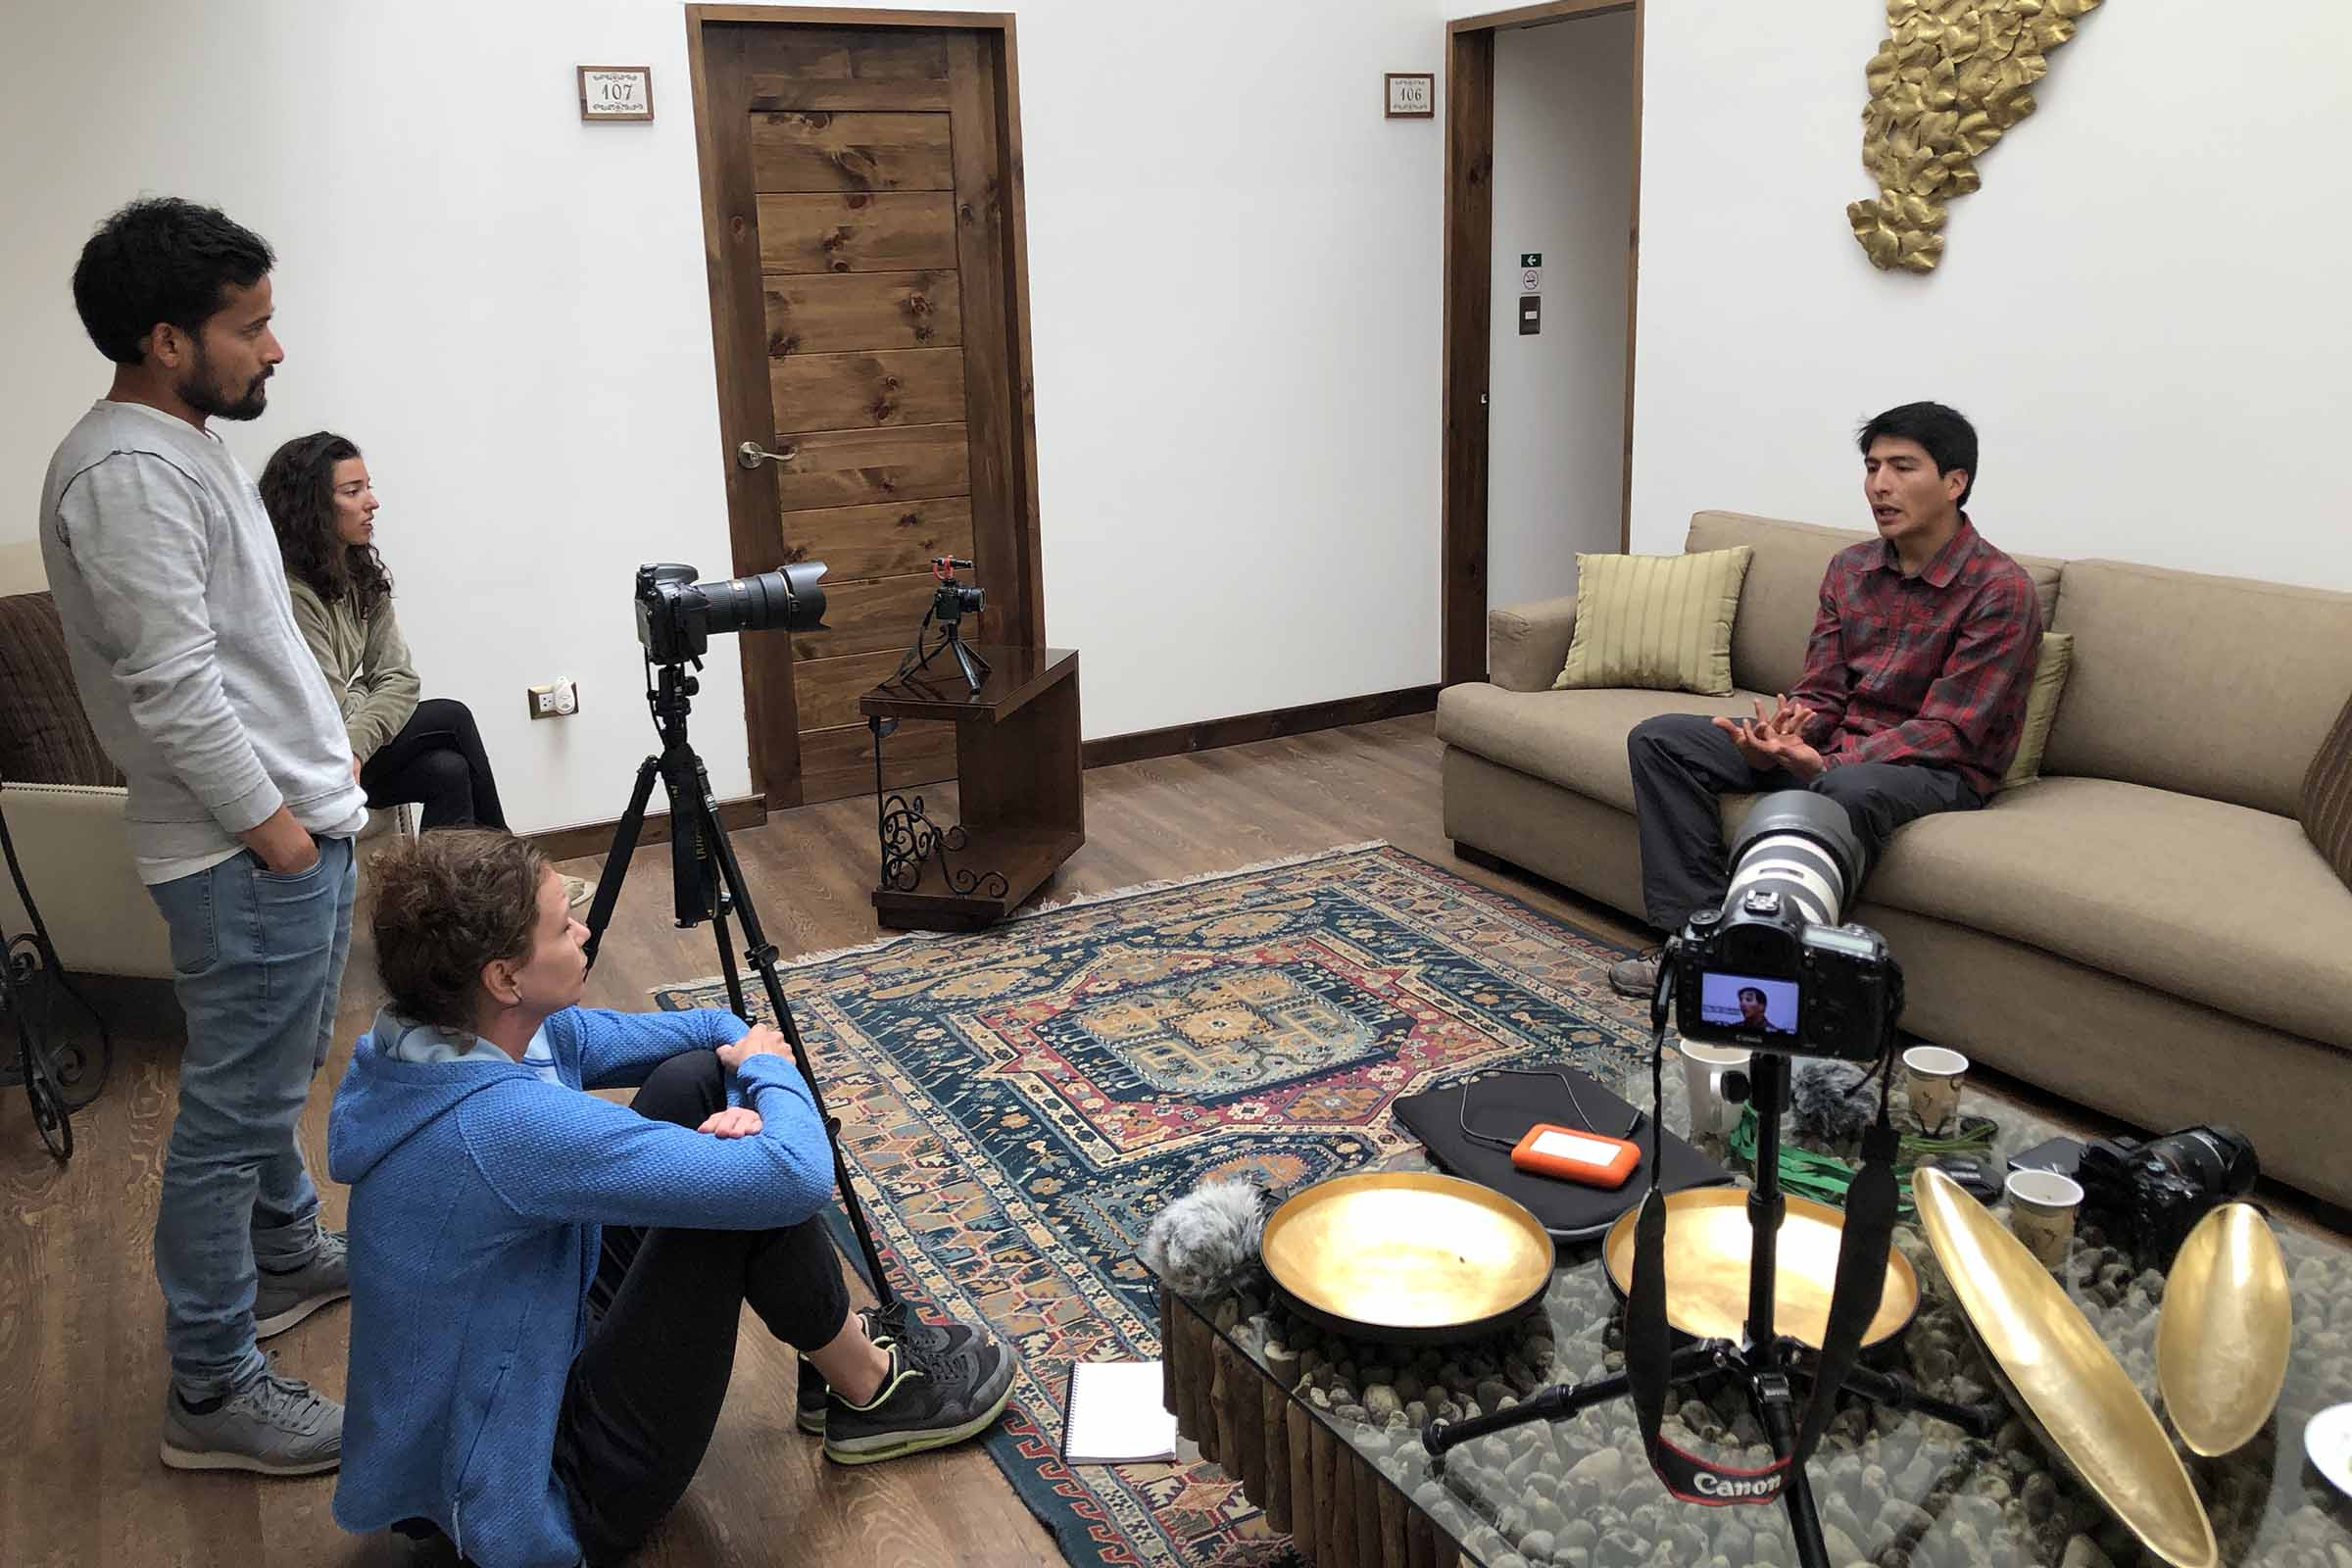 jimmy-nelson-foundation-peru-quechua-behind-the-scenes-gallery-44